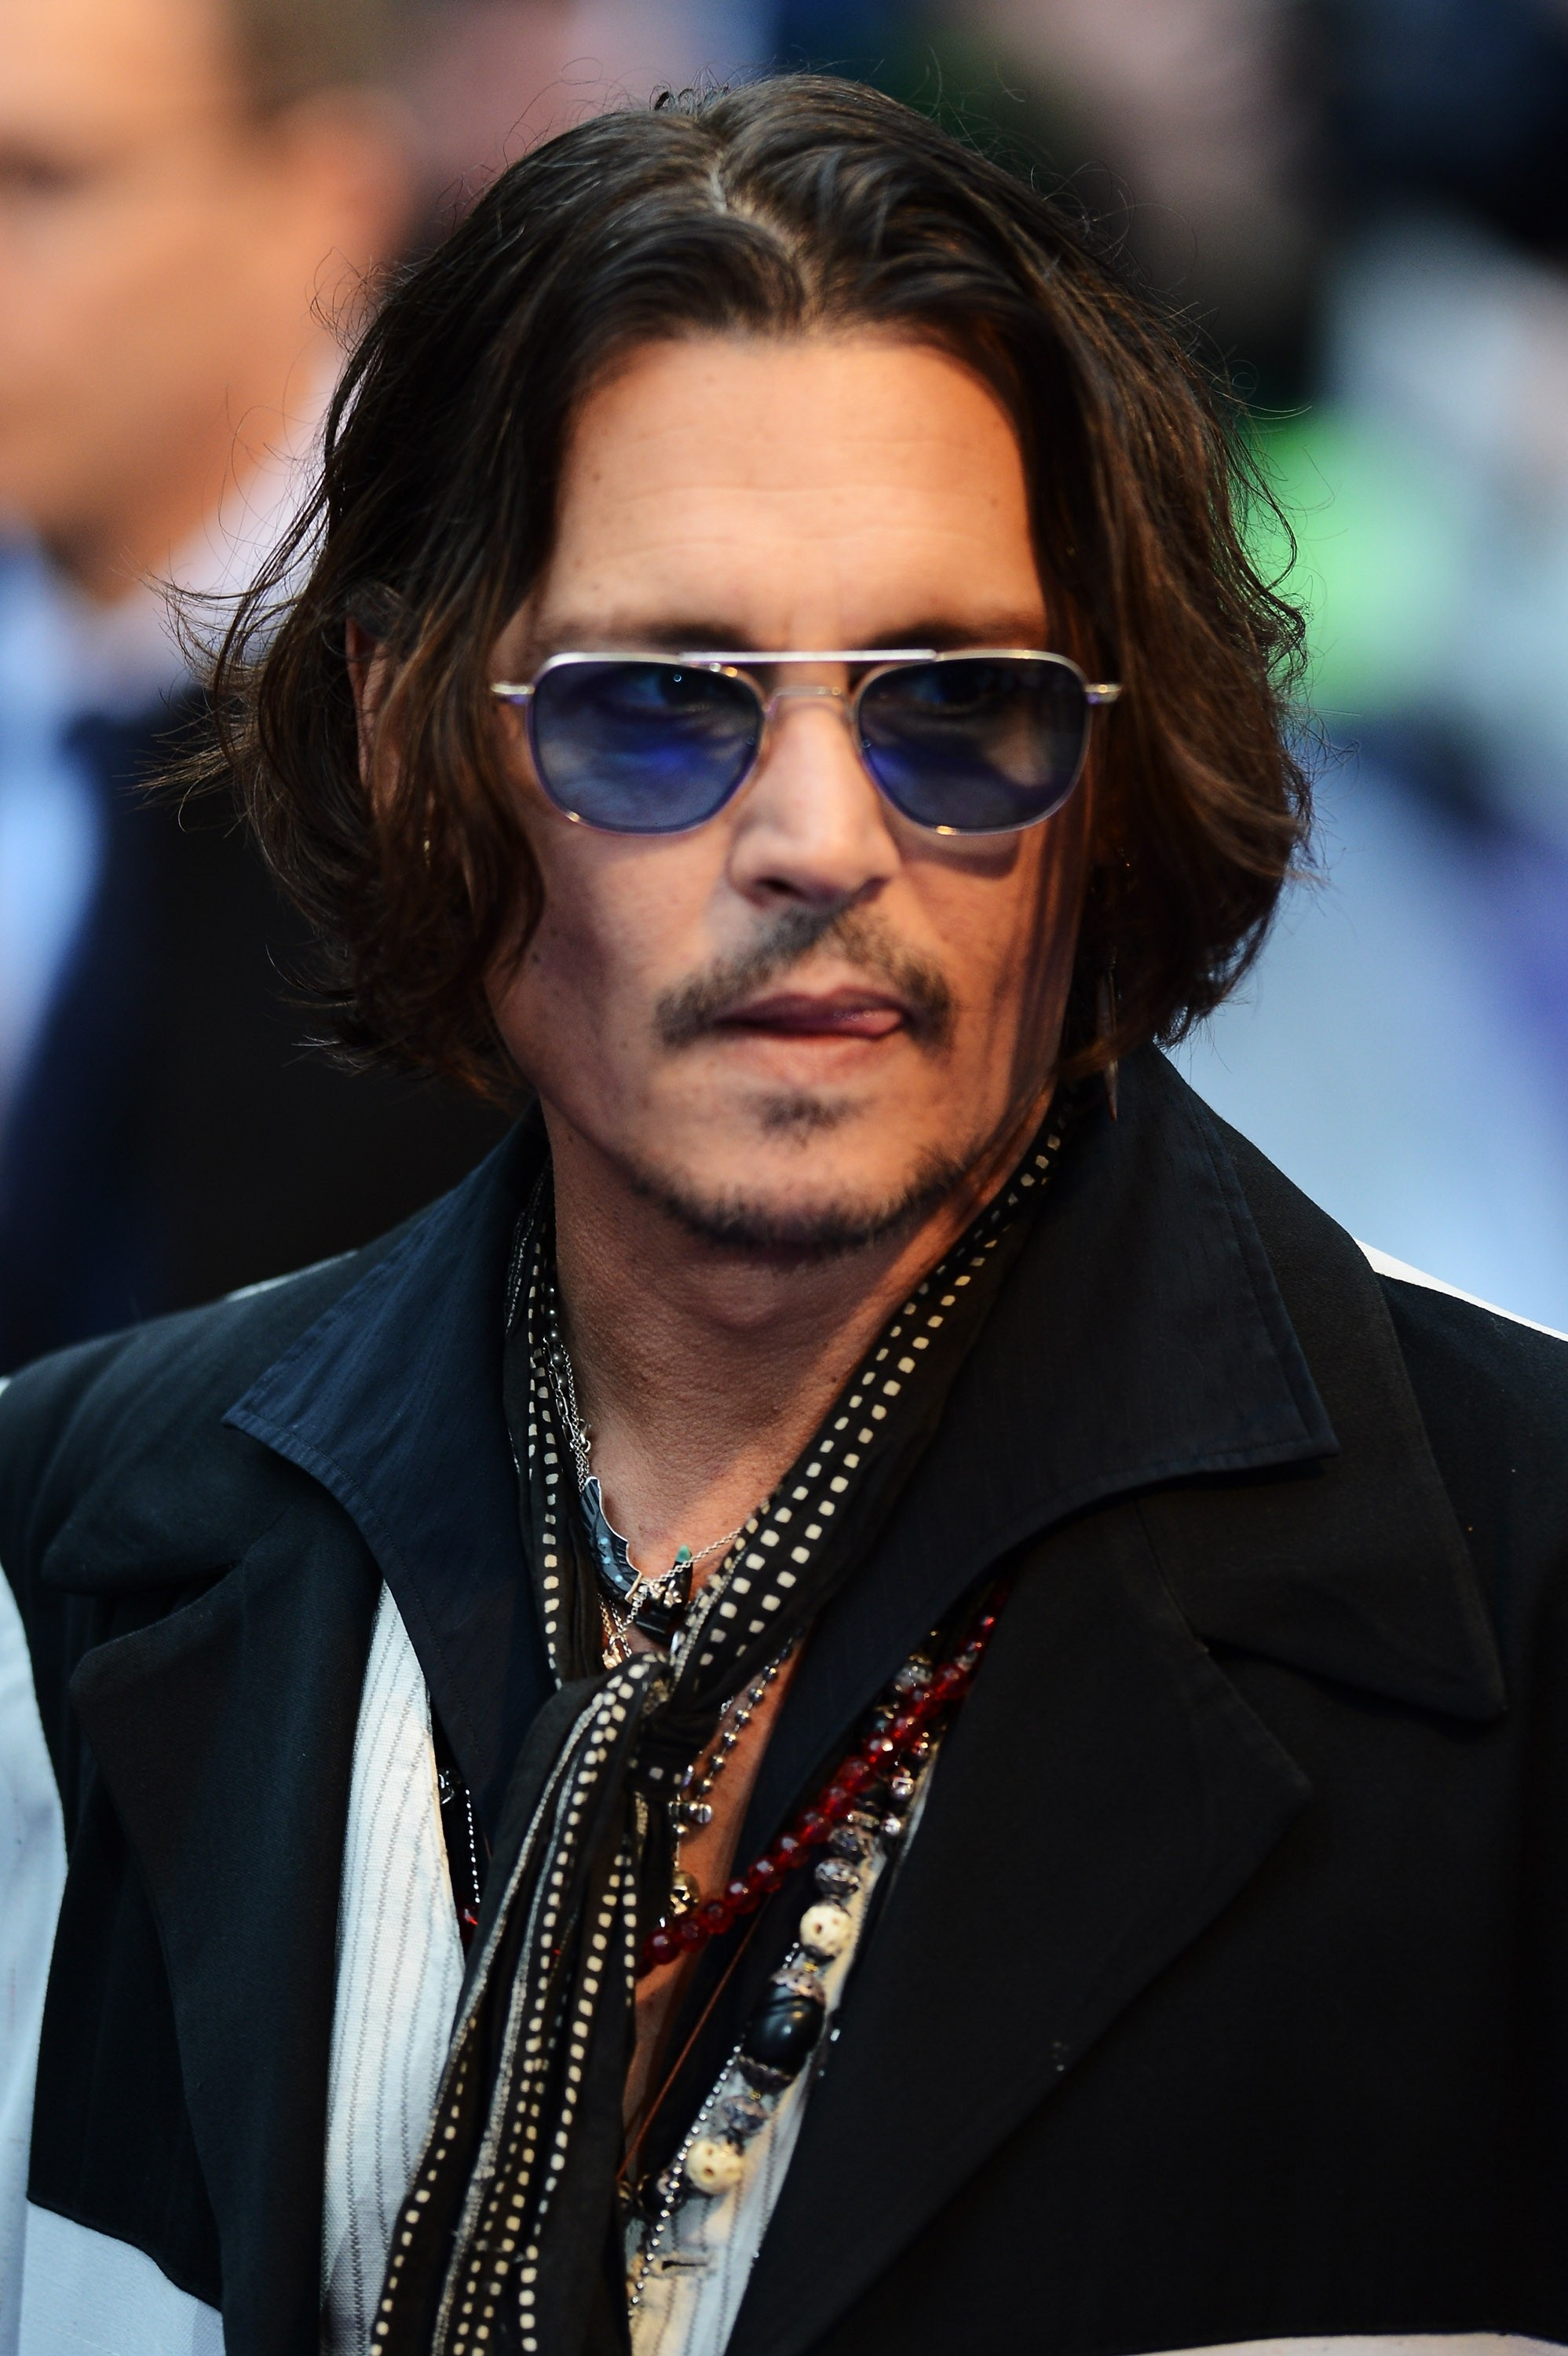 Johnny Depp photo #405313